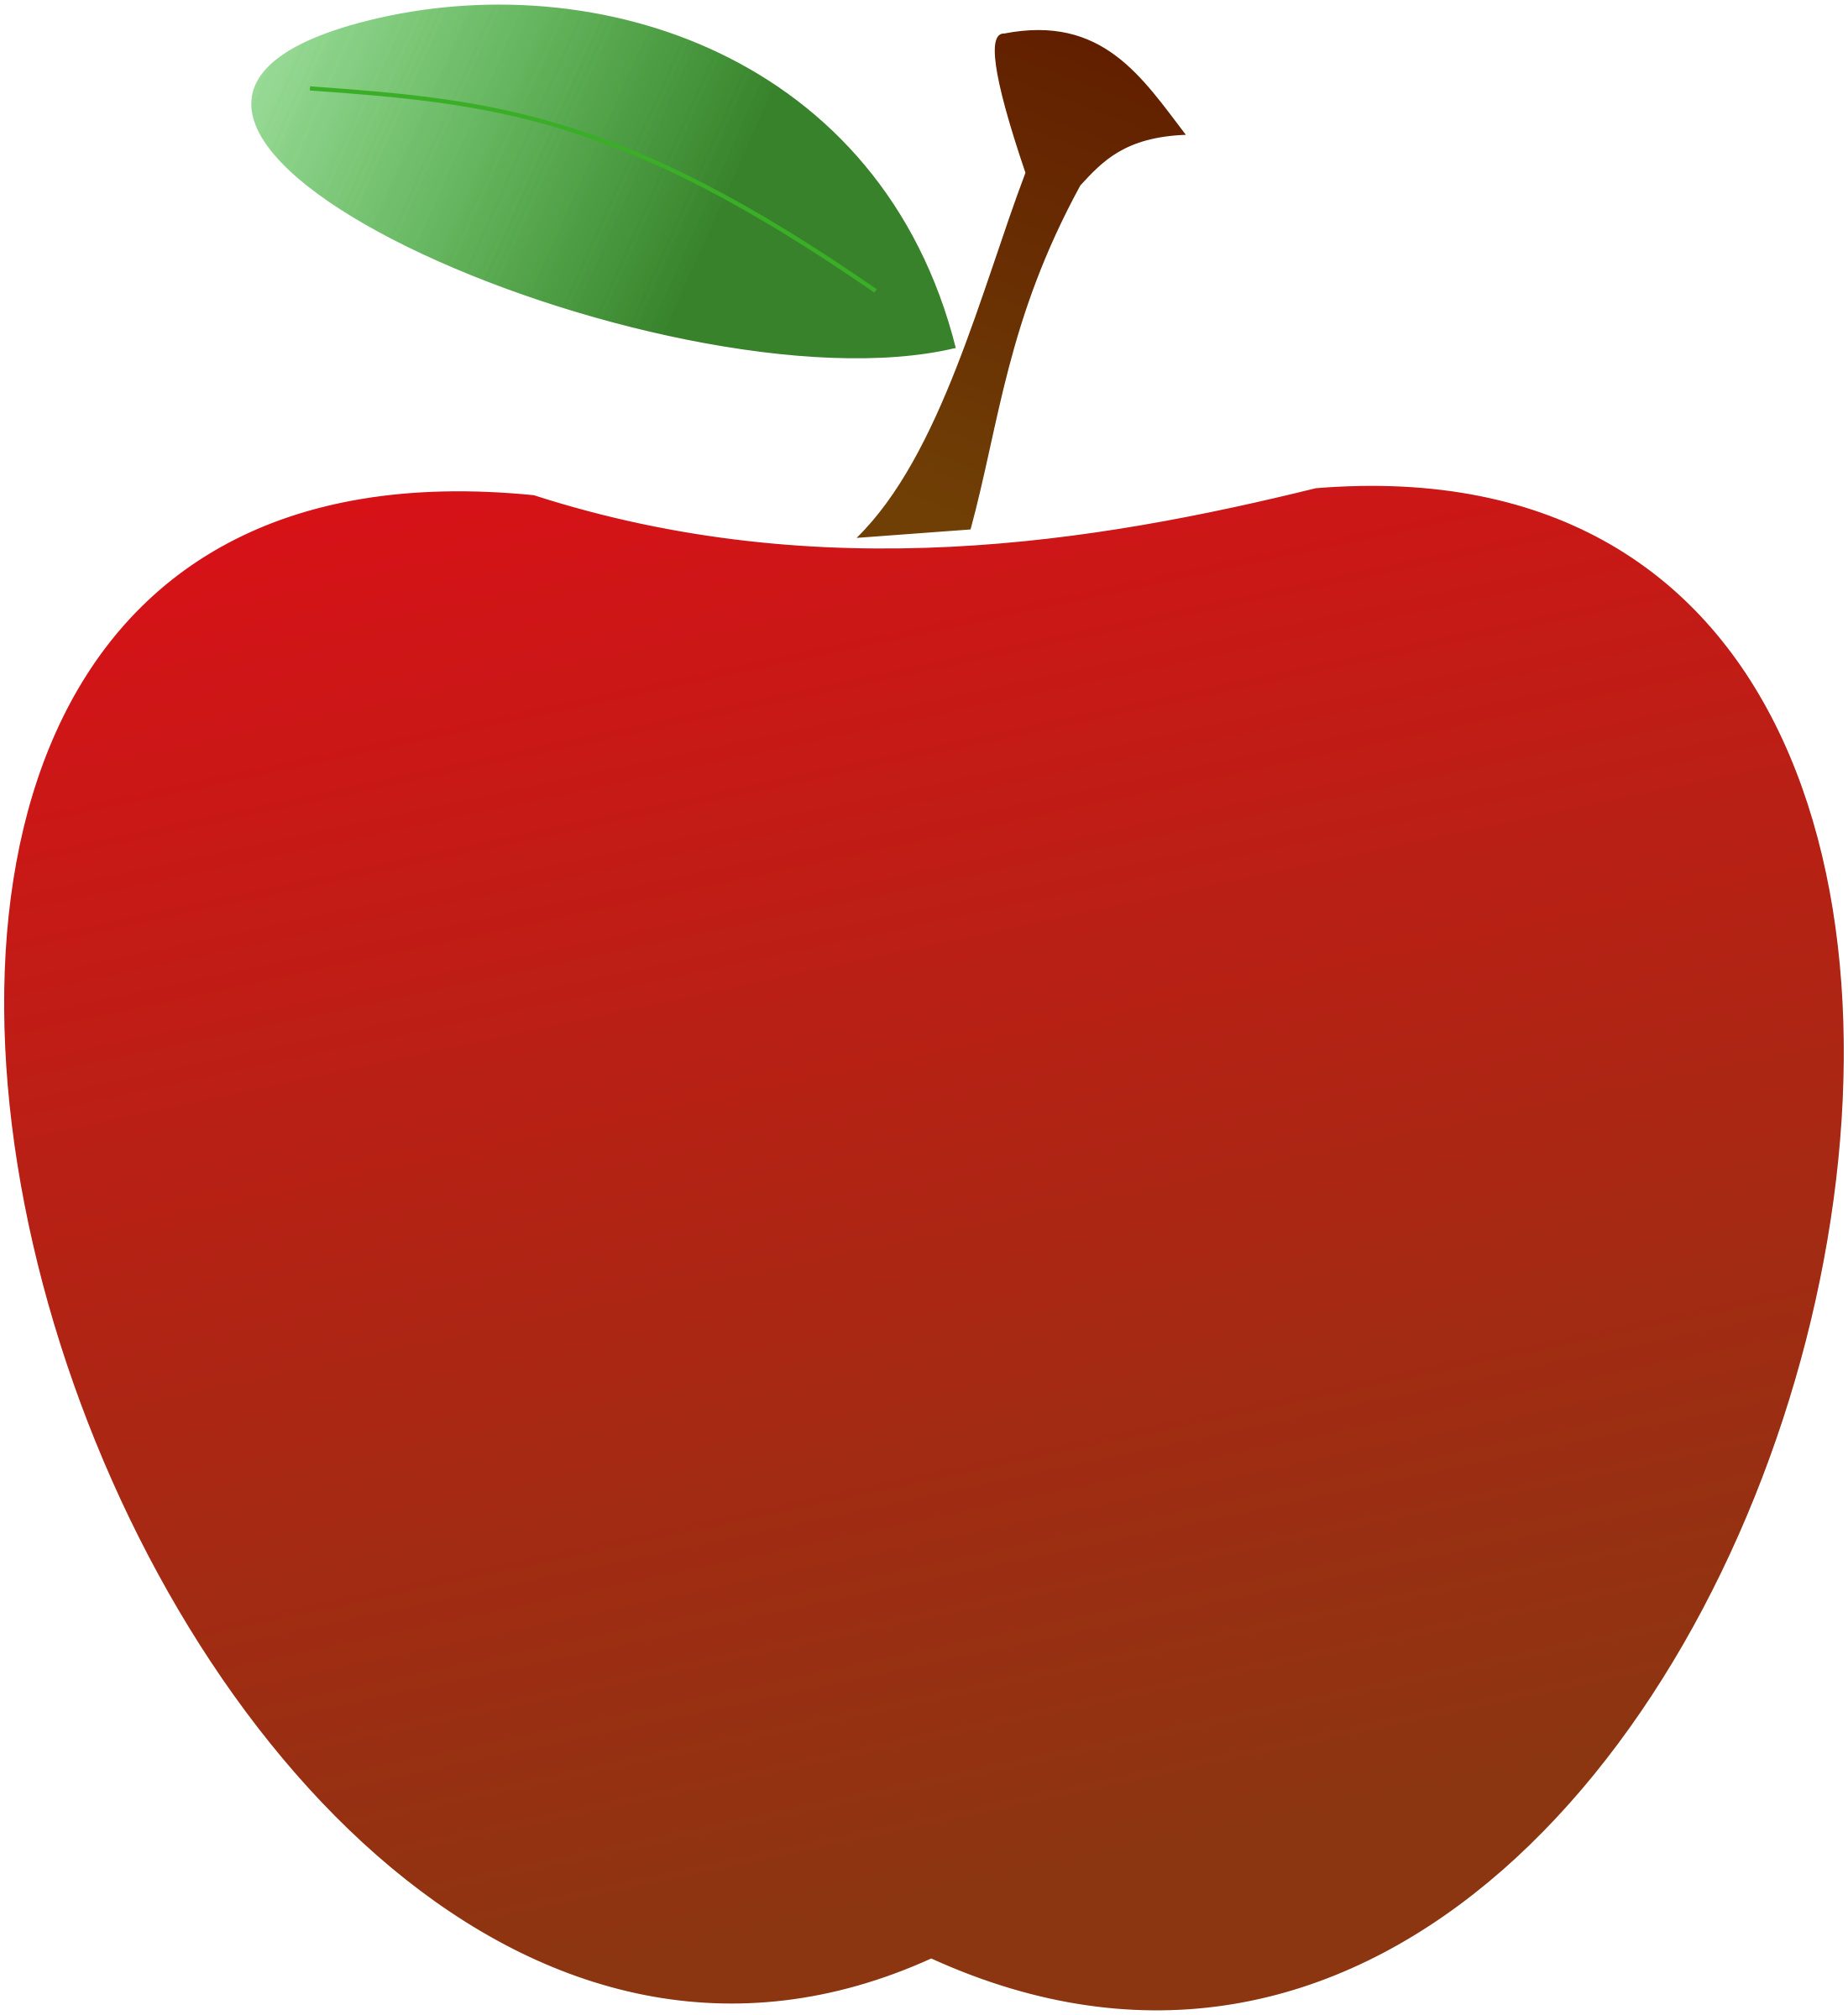 clipart picture of apple - photo #35